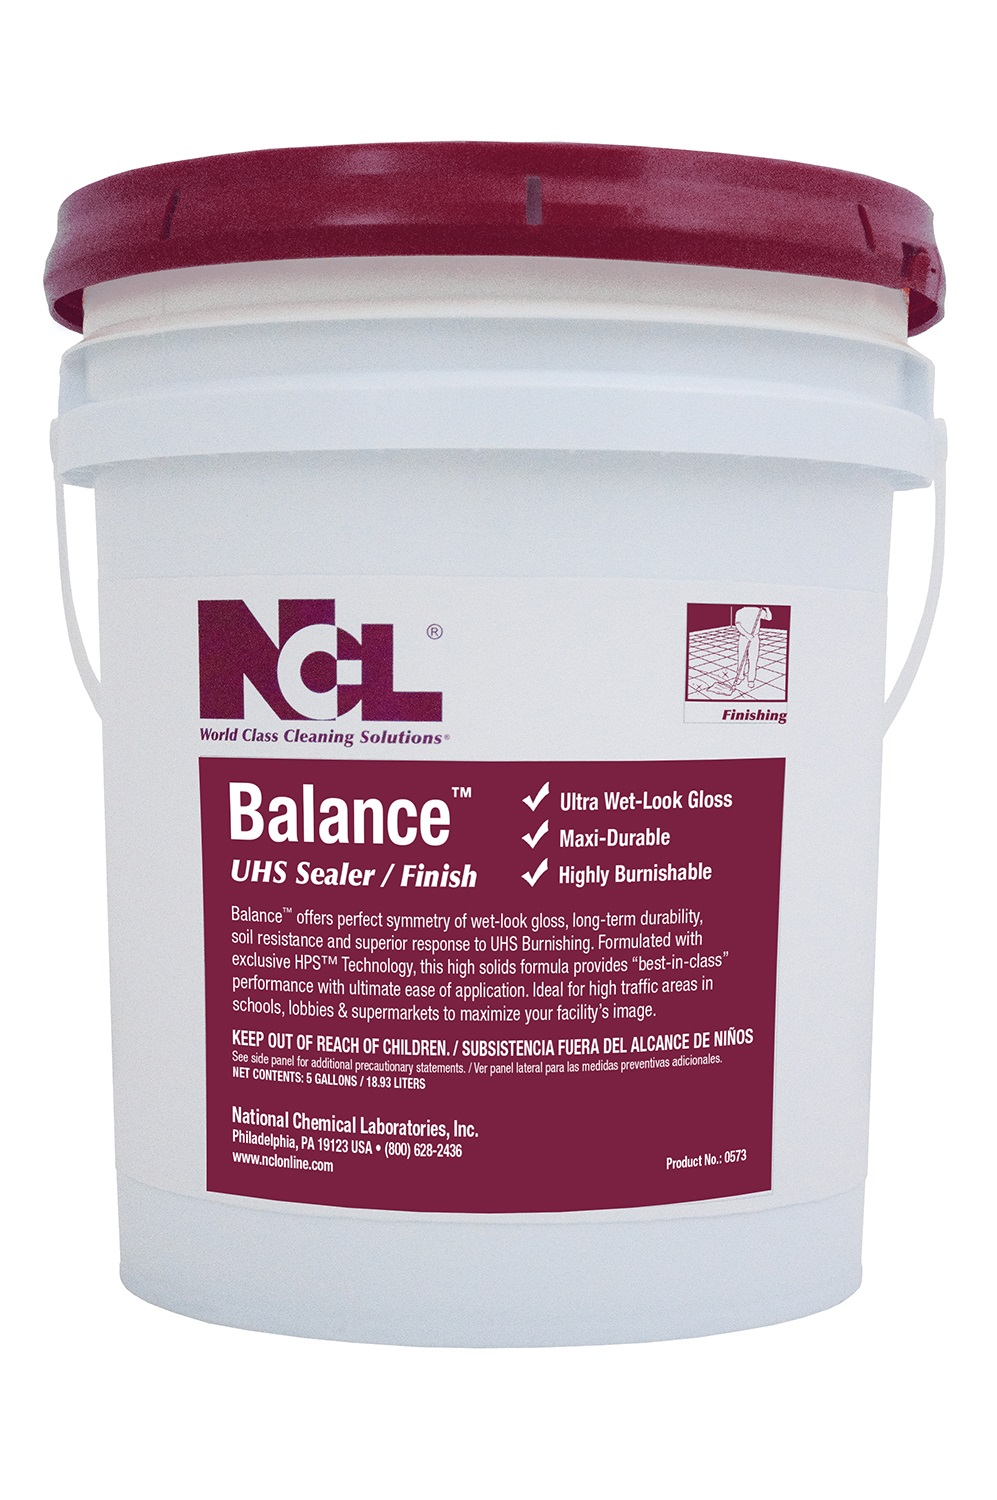 NCL Balance UHS Sealer/Finish